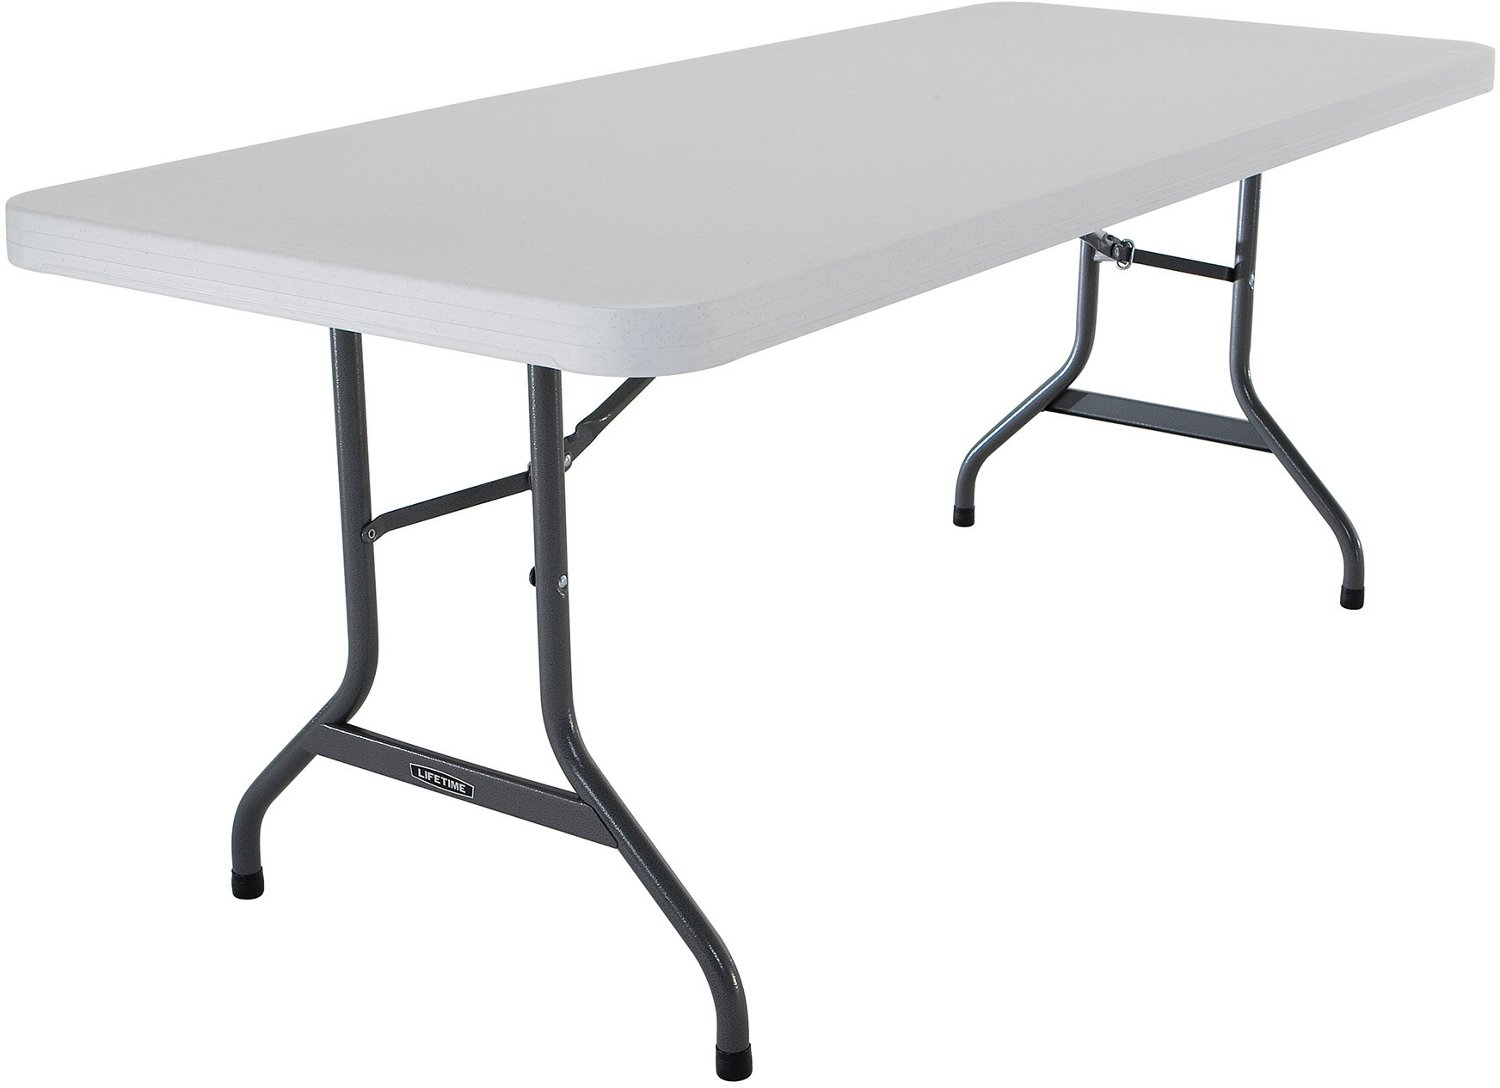 Lifetime 6 ft Commercial Plastic Folding Banquet Table - view number 2